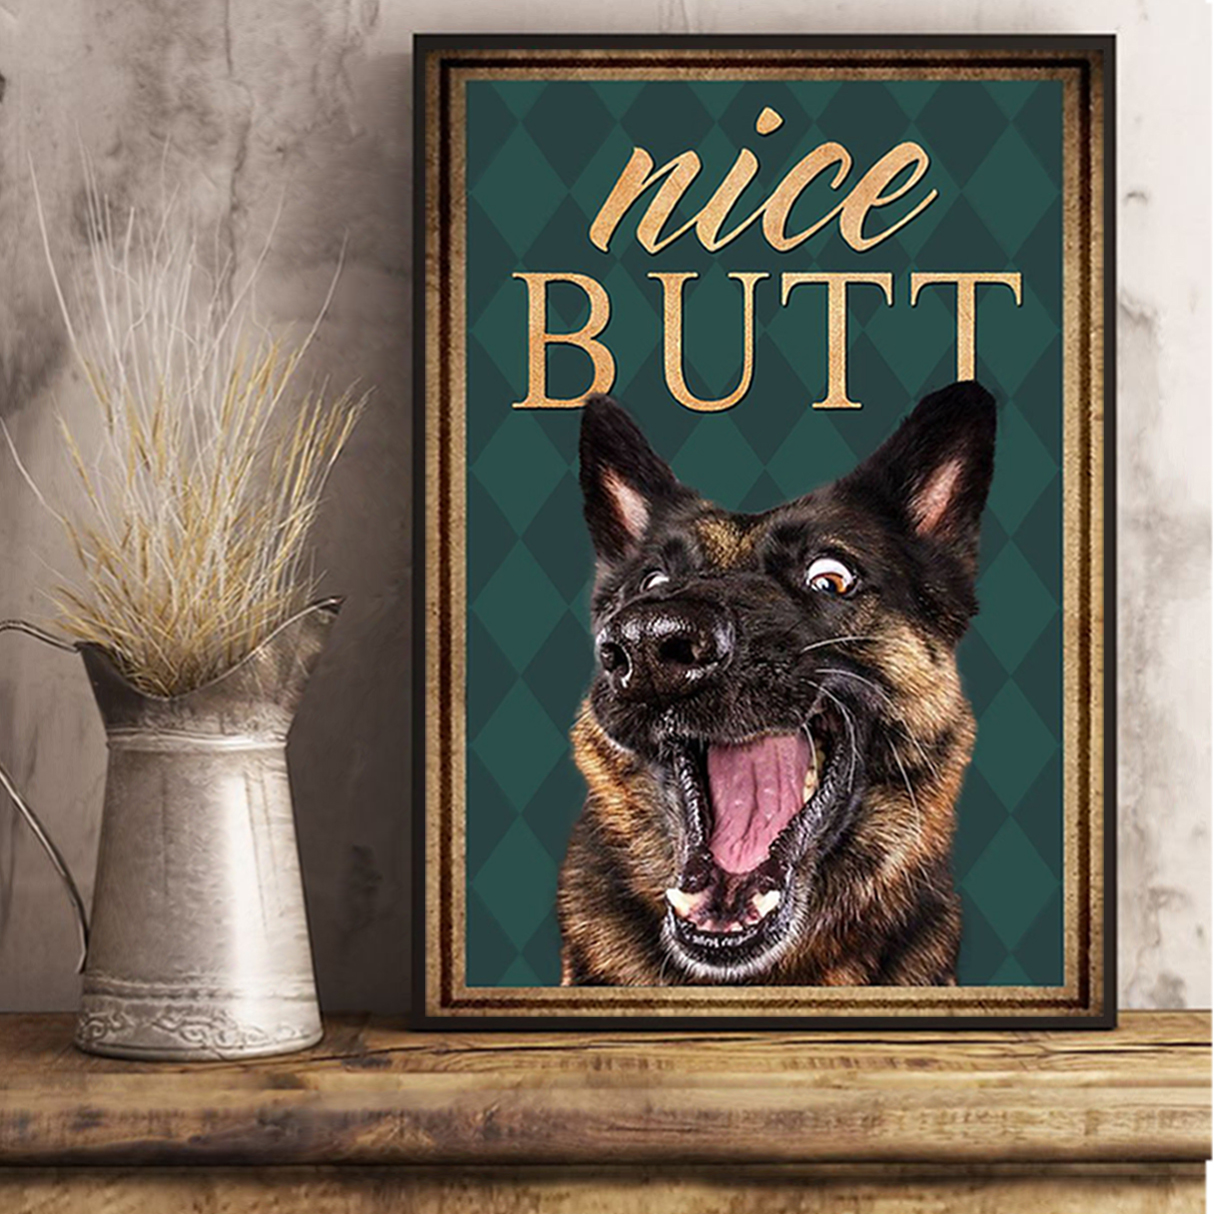 German shepherd nice butt poster A3